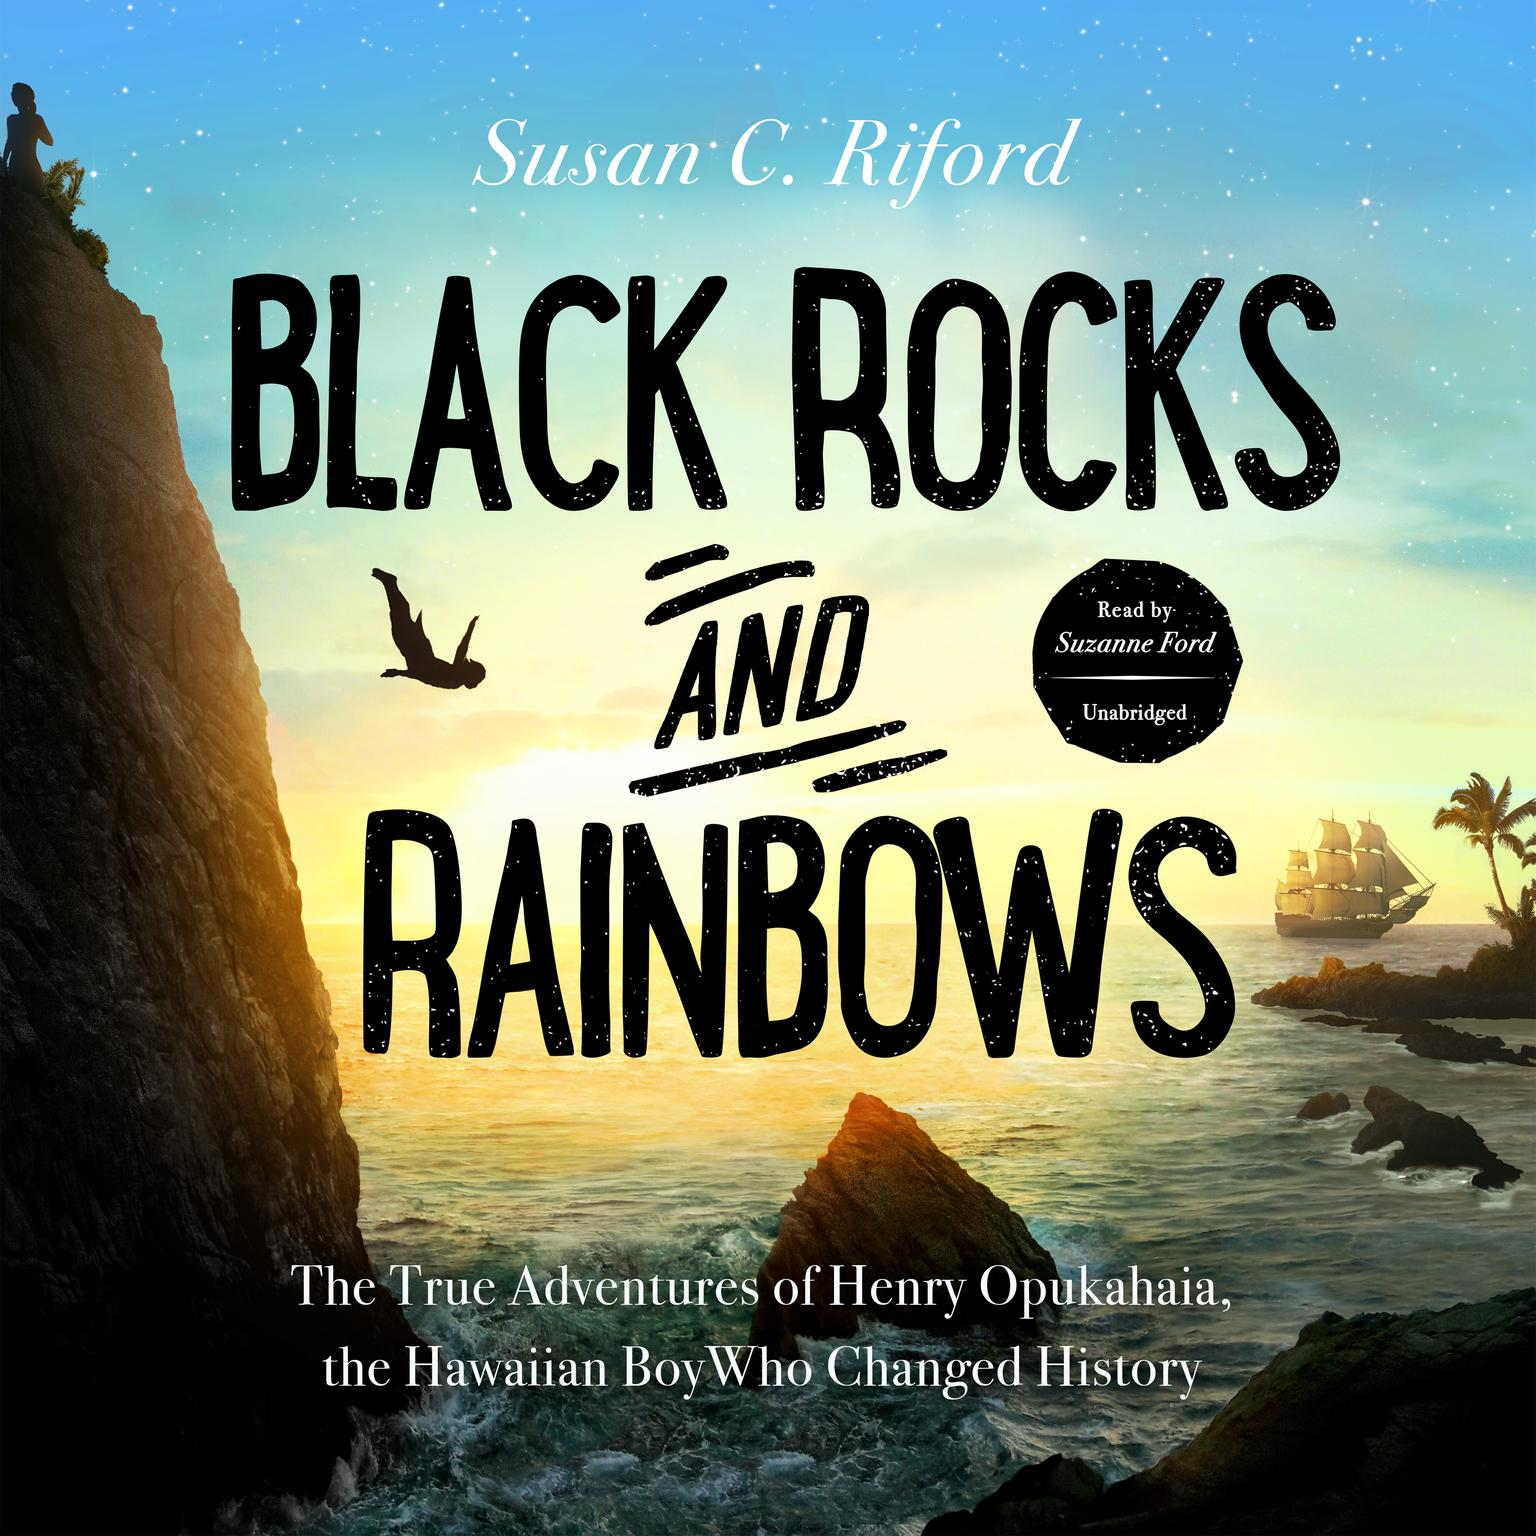 Black Rocks and Rainbows: The True Adventures of Henry Opukahaia, the Hawaiian Boy Who Changed History Audiobook, by Susan C. Riford